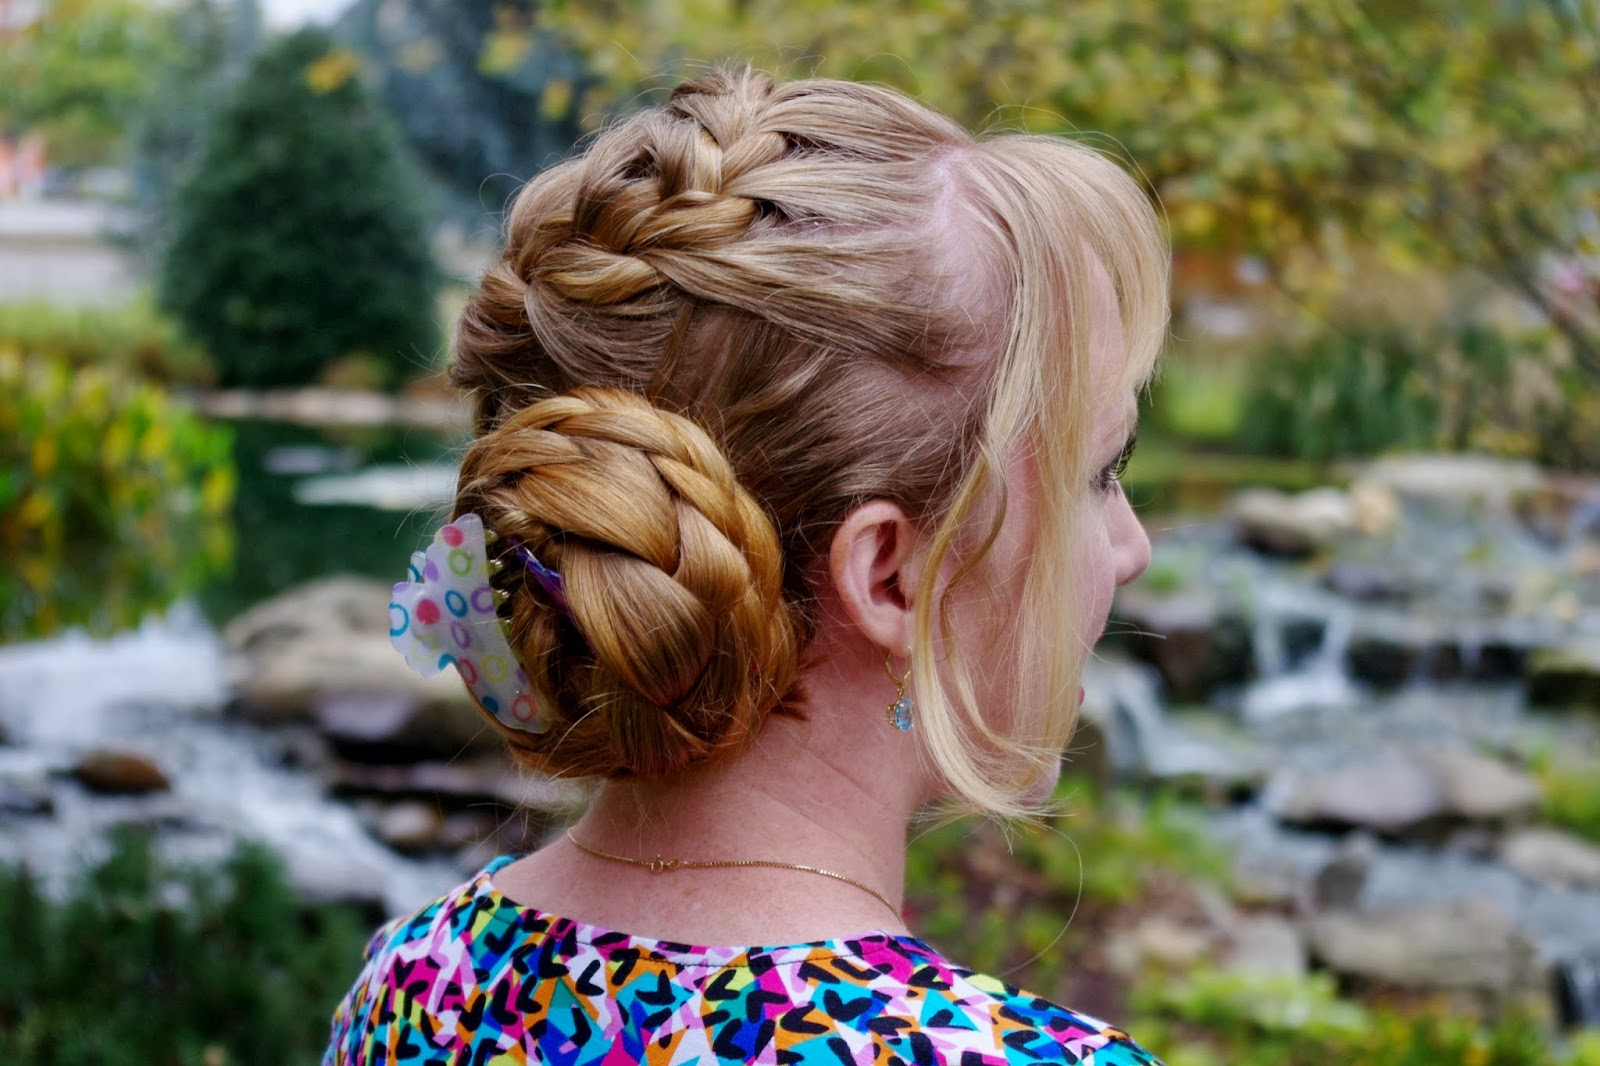 I Love A Zigzag French Braid~ It Adds Extra Flair To An Otherwise  Everyday Hairstyle!